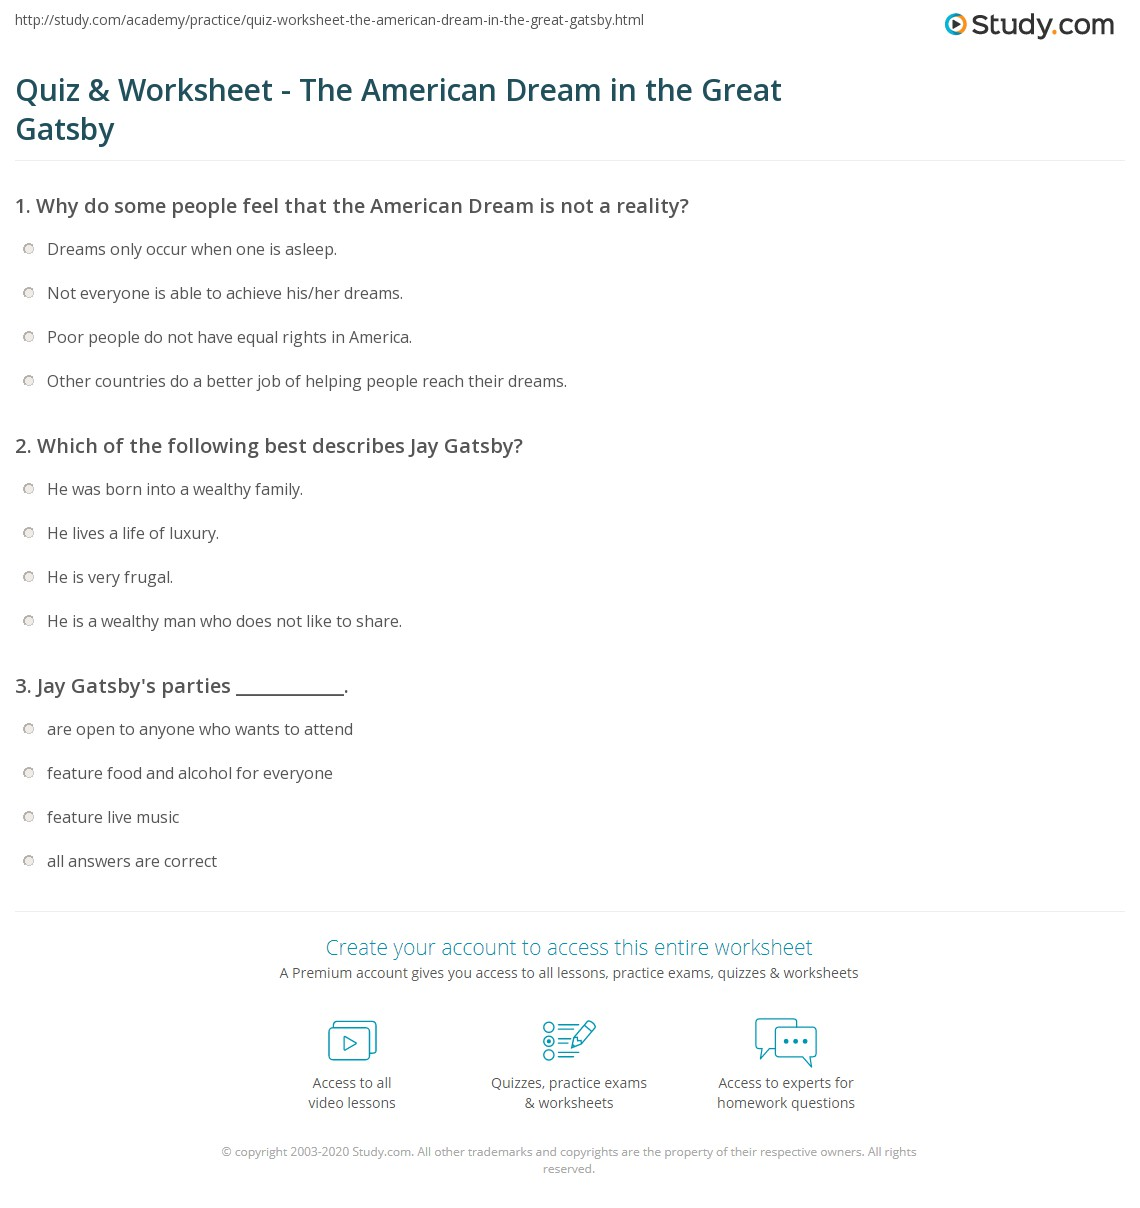 quiz worksheet the american dream in the great gatsby. Black Bedroom Furniture Sets. Home Design Ideas